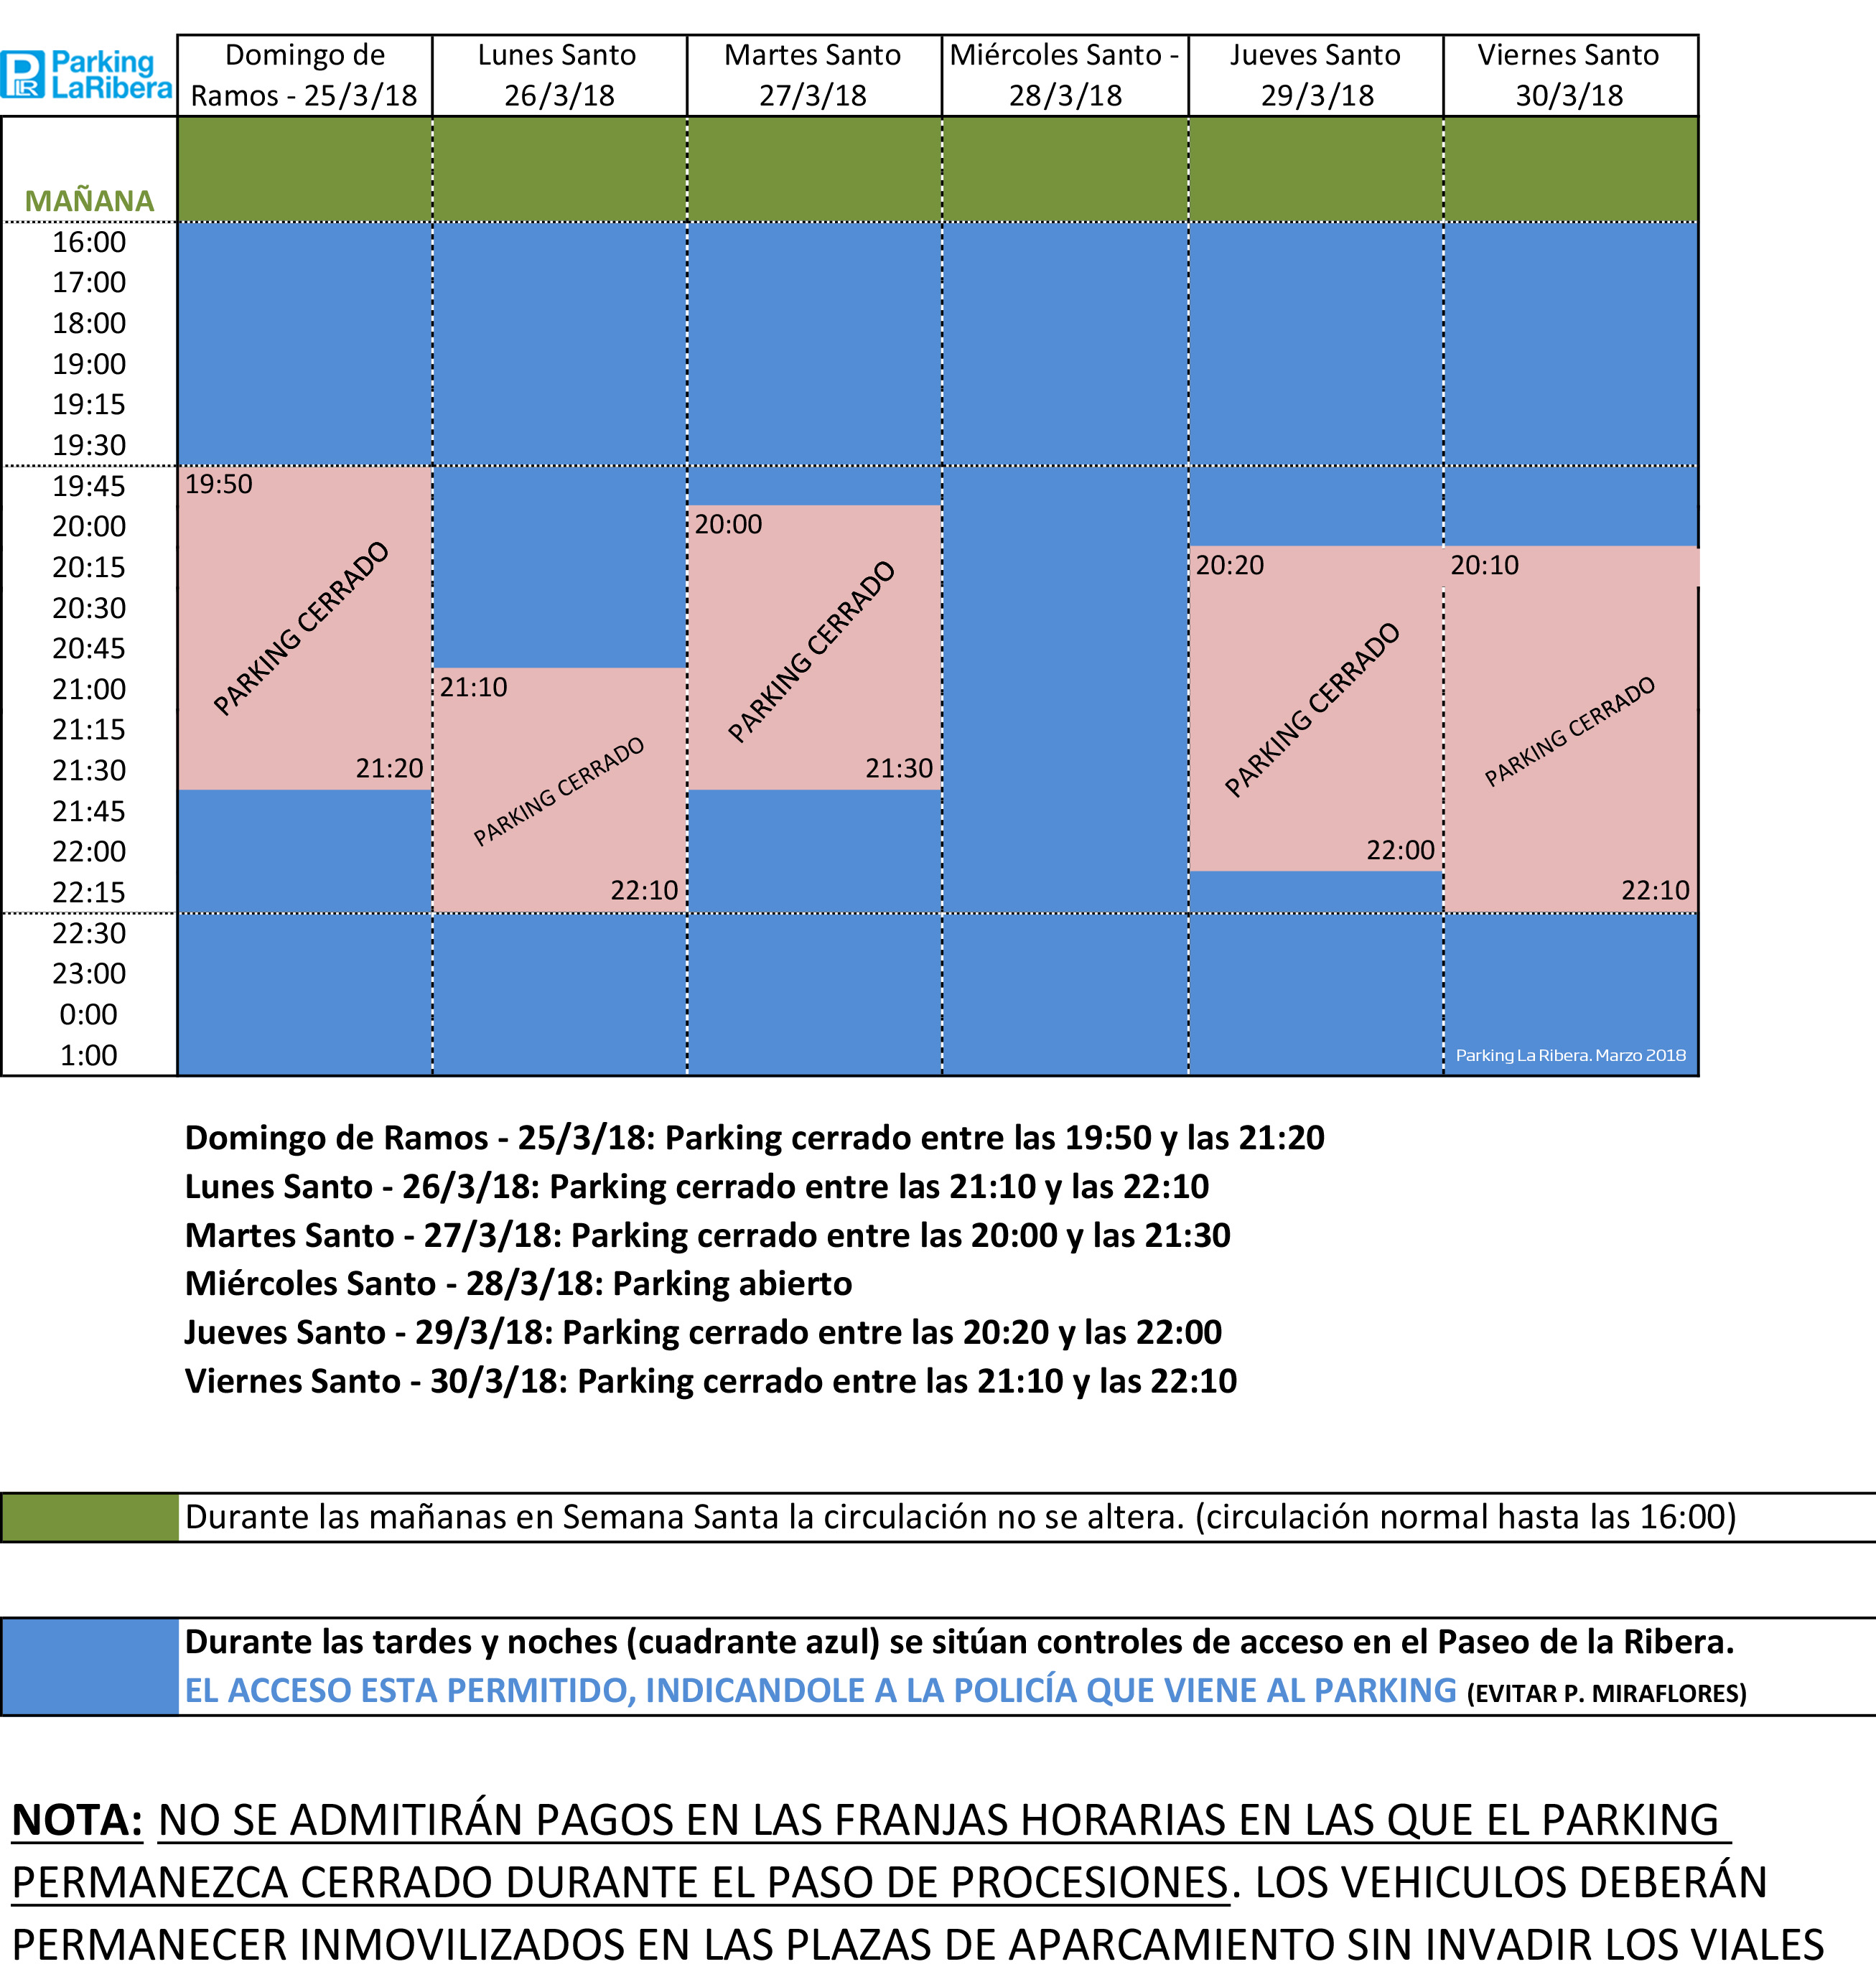 Parking-La-Ribera-Horario-Semana-Santa-2018